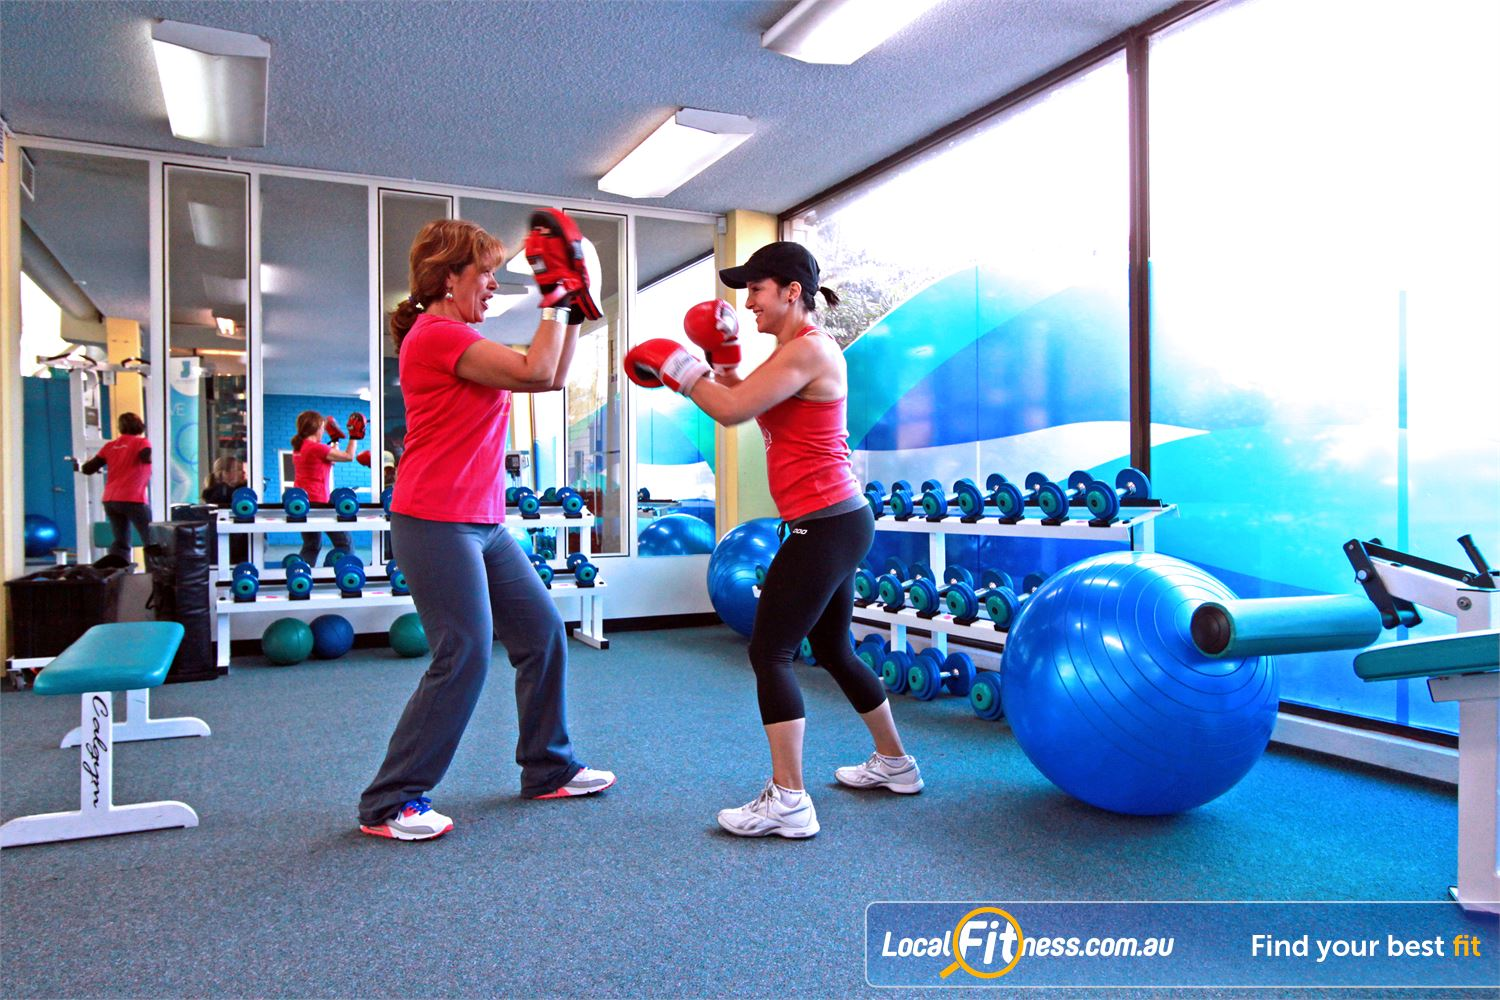 Fernwood Fitness Near Warwick Farm With Liverpool personal trainers you can lose weight fast with our energetic cardio boxing workouts.